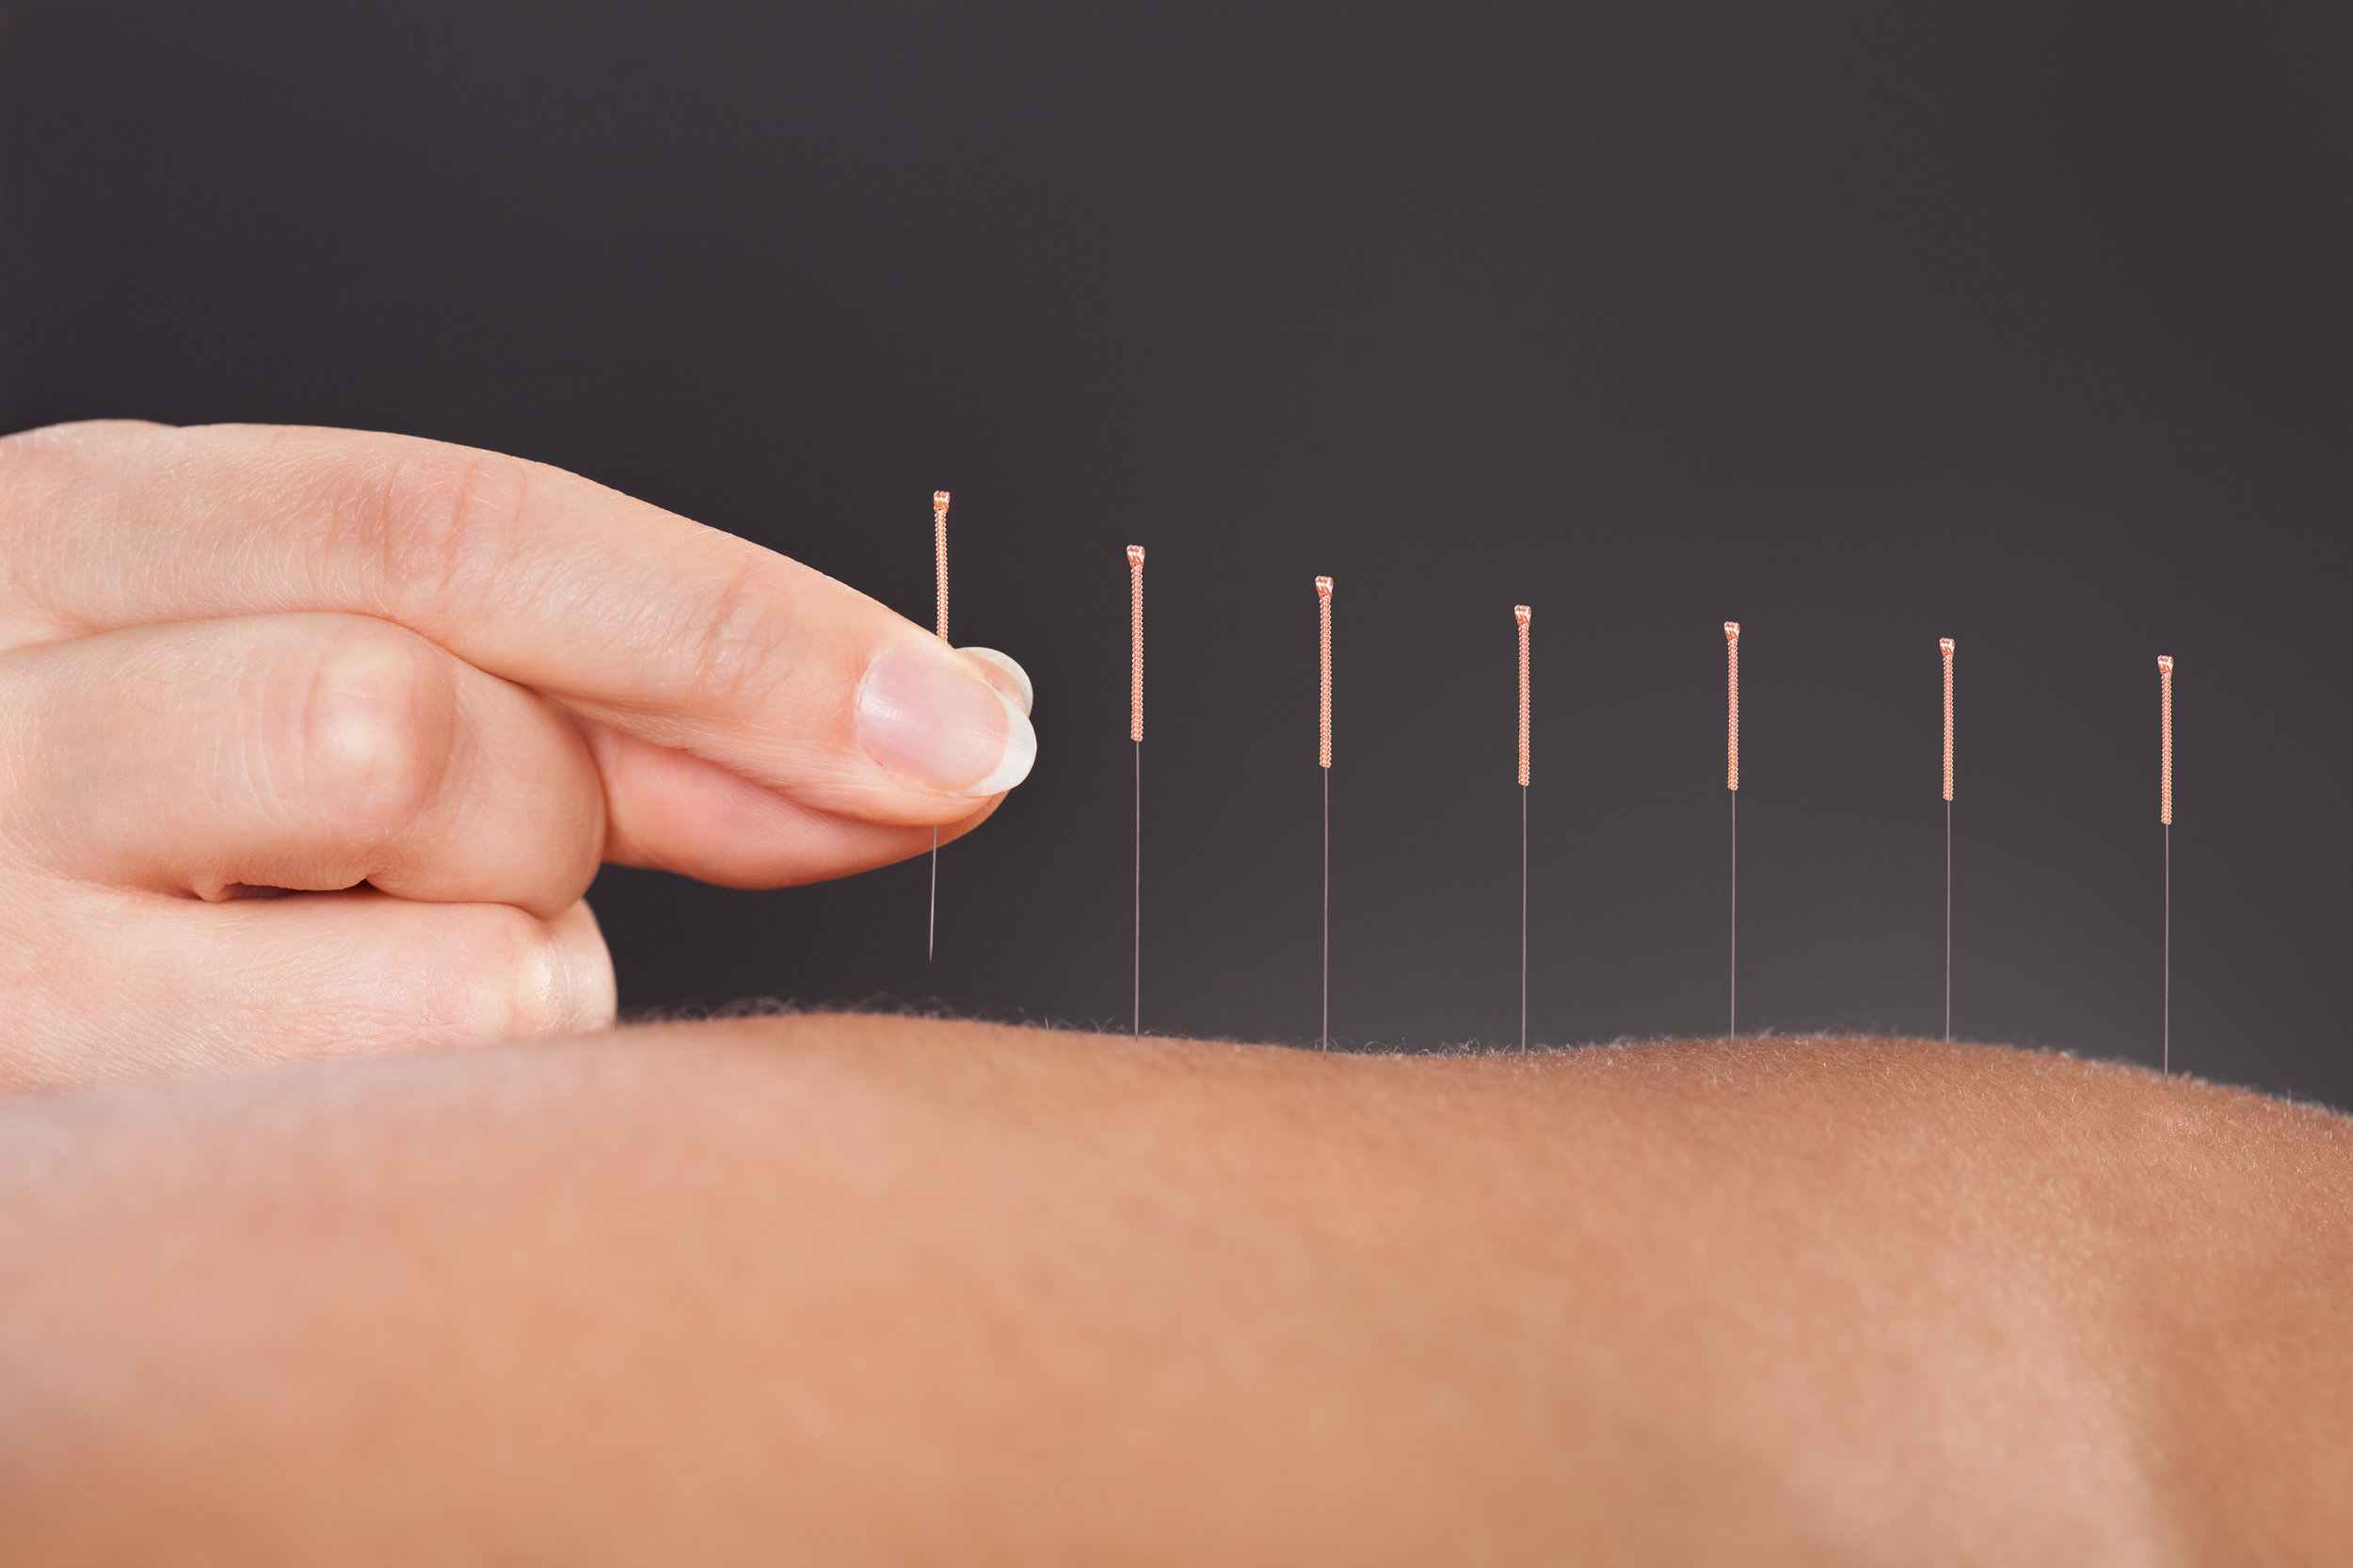 Acupuncture - Acupuncture is over 2,500 years old and a world renowned method of healing. Our board certified acupuncturist can help with a wide variety of conditions from your standard neck and back pain, to relentless nightmares, stress, and even appetite issues.